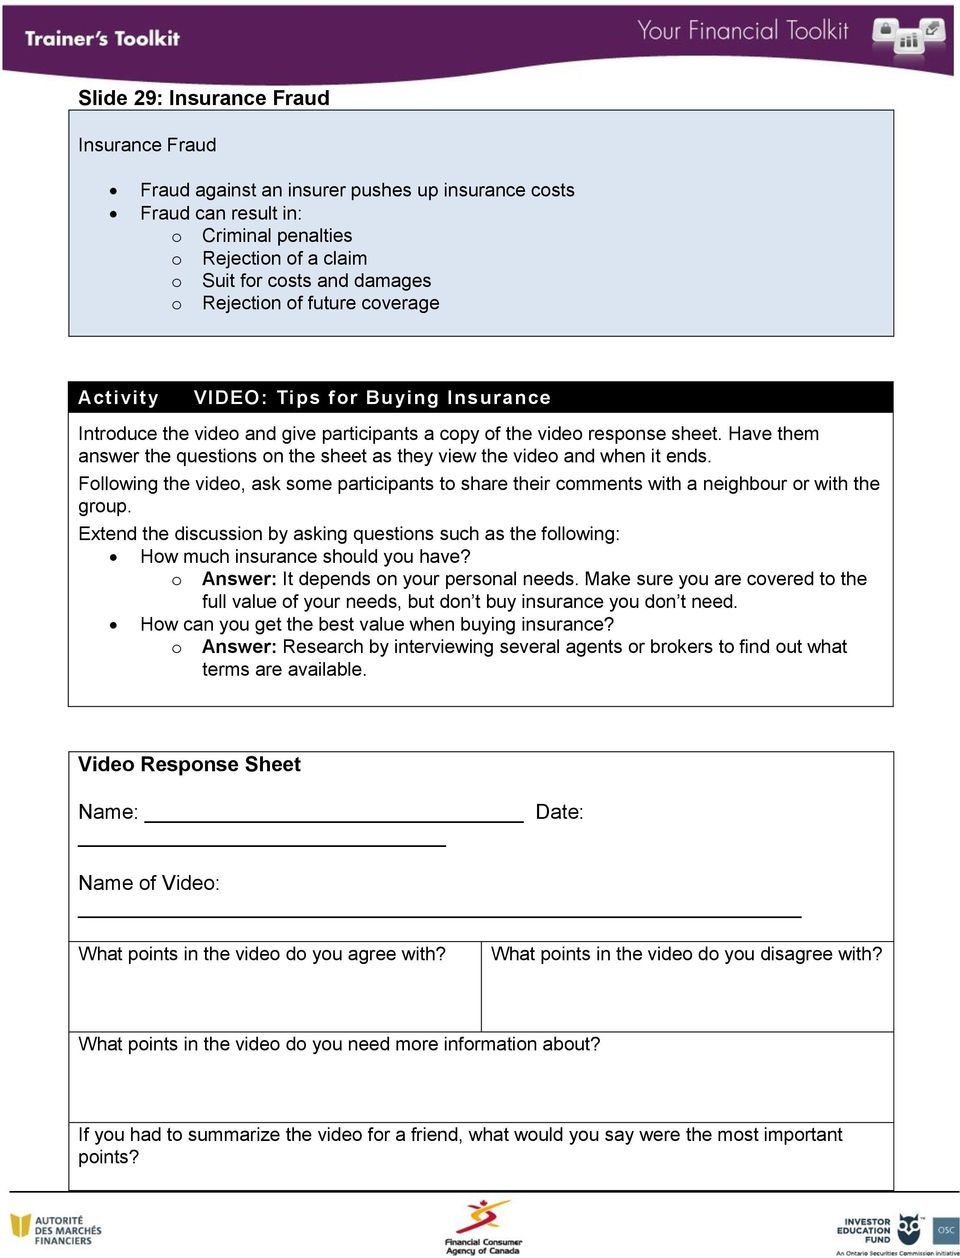 Have them answer the questions on the sheet as they view the video and when it ends. Following the video, ask some participants to share their comments with a neighbour or with the group.